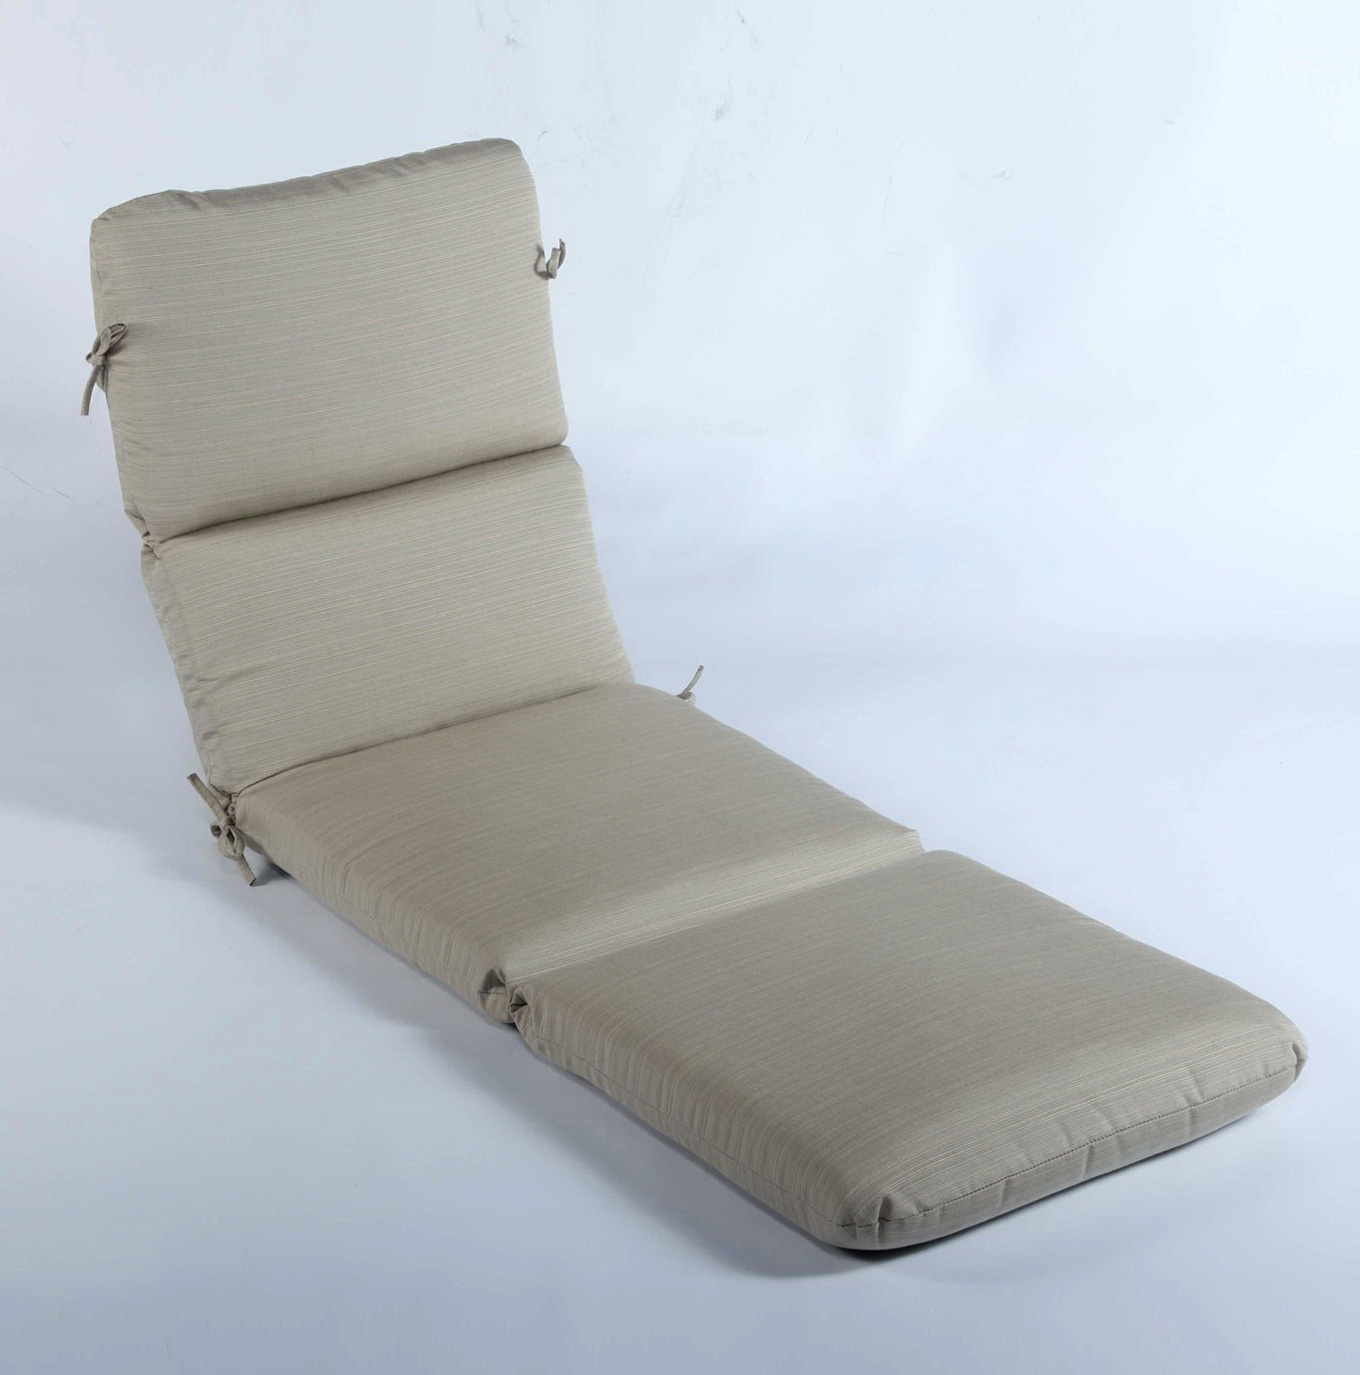 Chaise Lounge Cushions Sunbrella